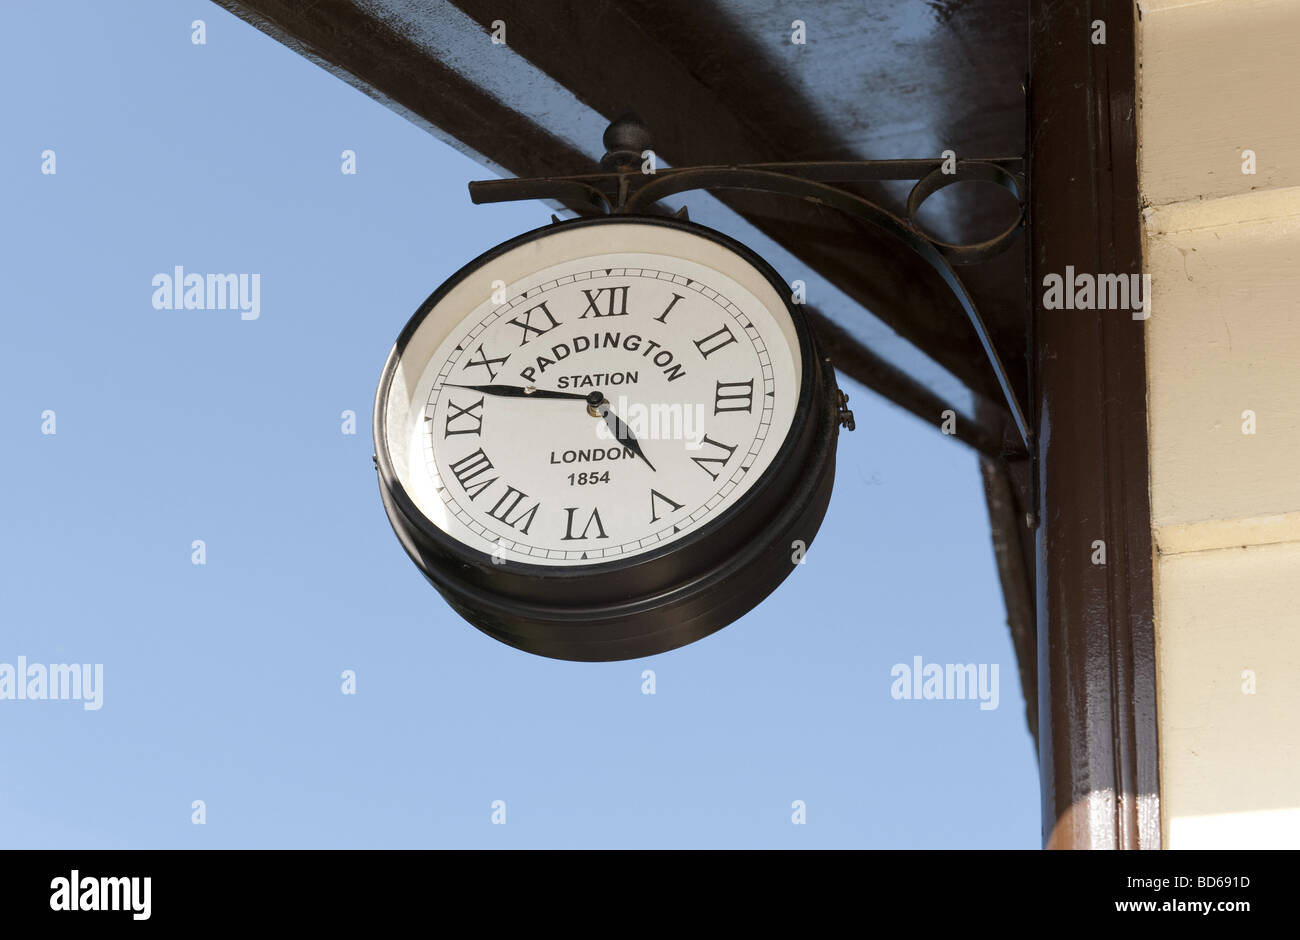 Wall hung Paddington Station branded analogue clock with Roman Numeral clock face indication 4.47 time against a - Stock Image